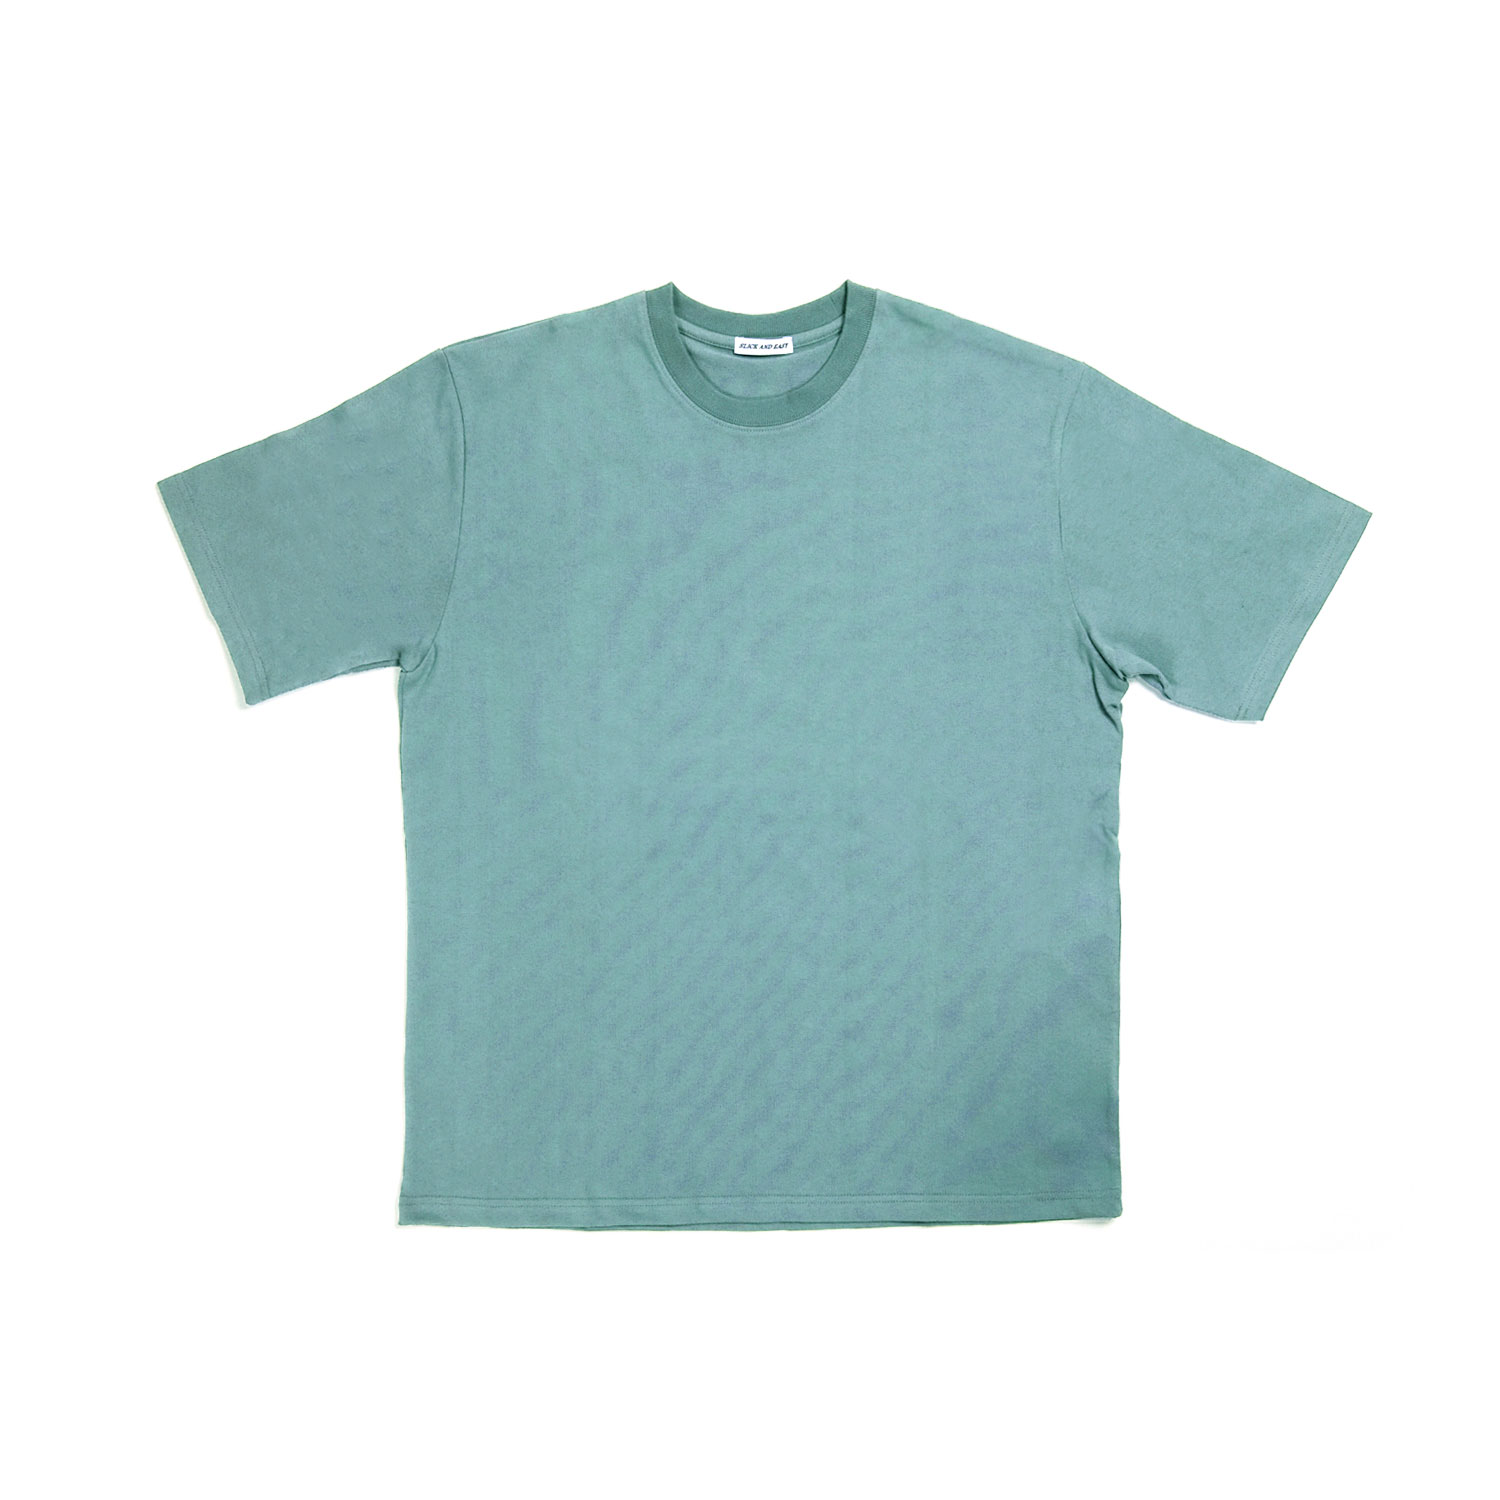 Bread Tee - Mint